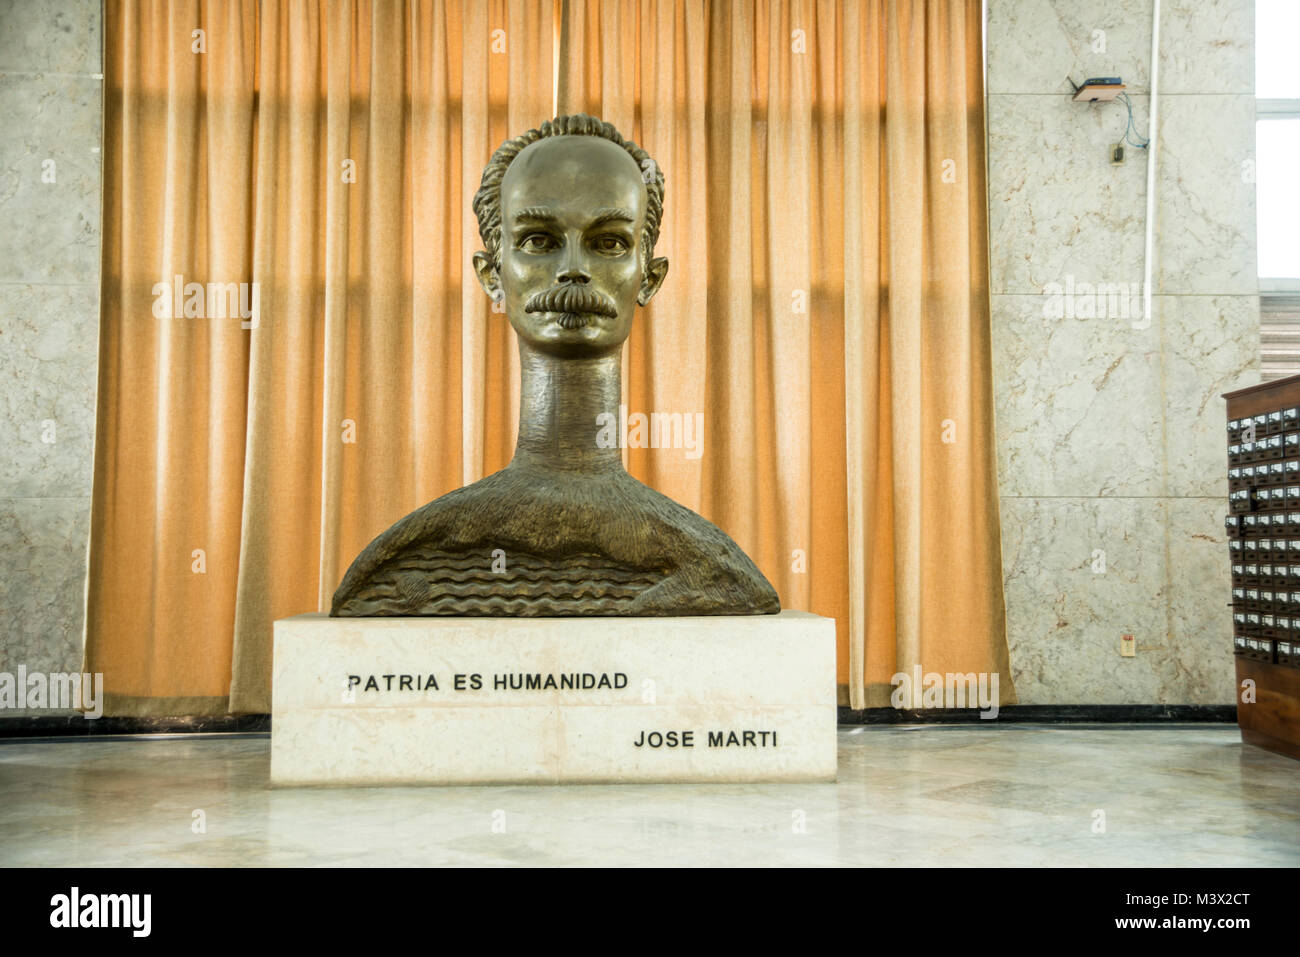 Bust of Jose Mart in the National Library of Cuba - Stock Image